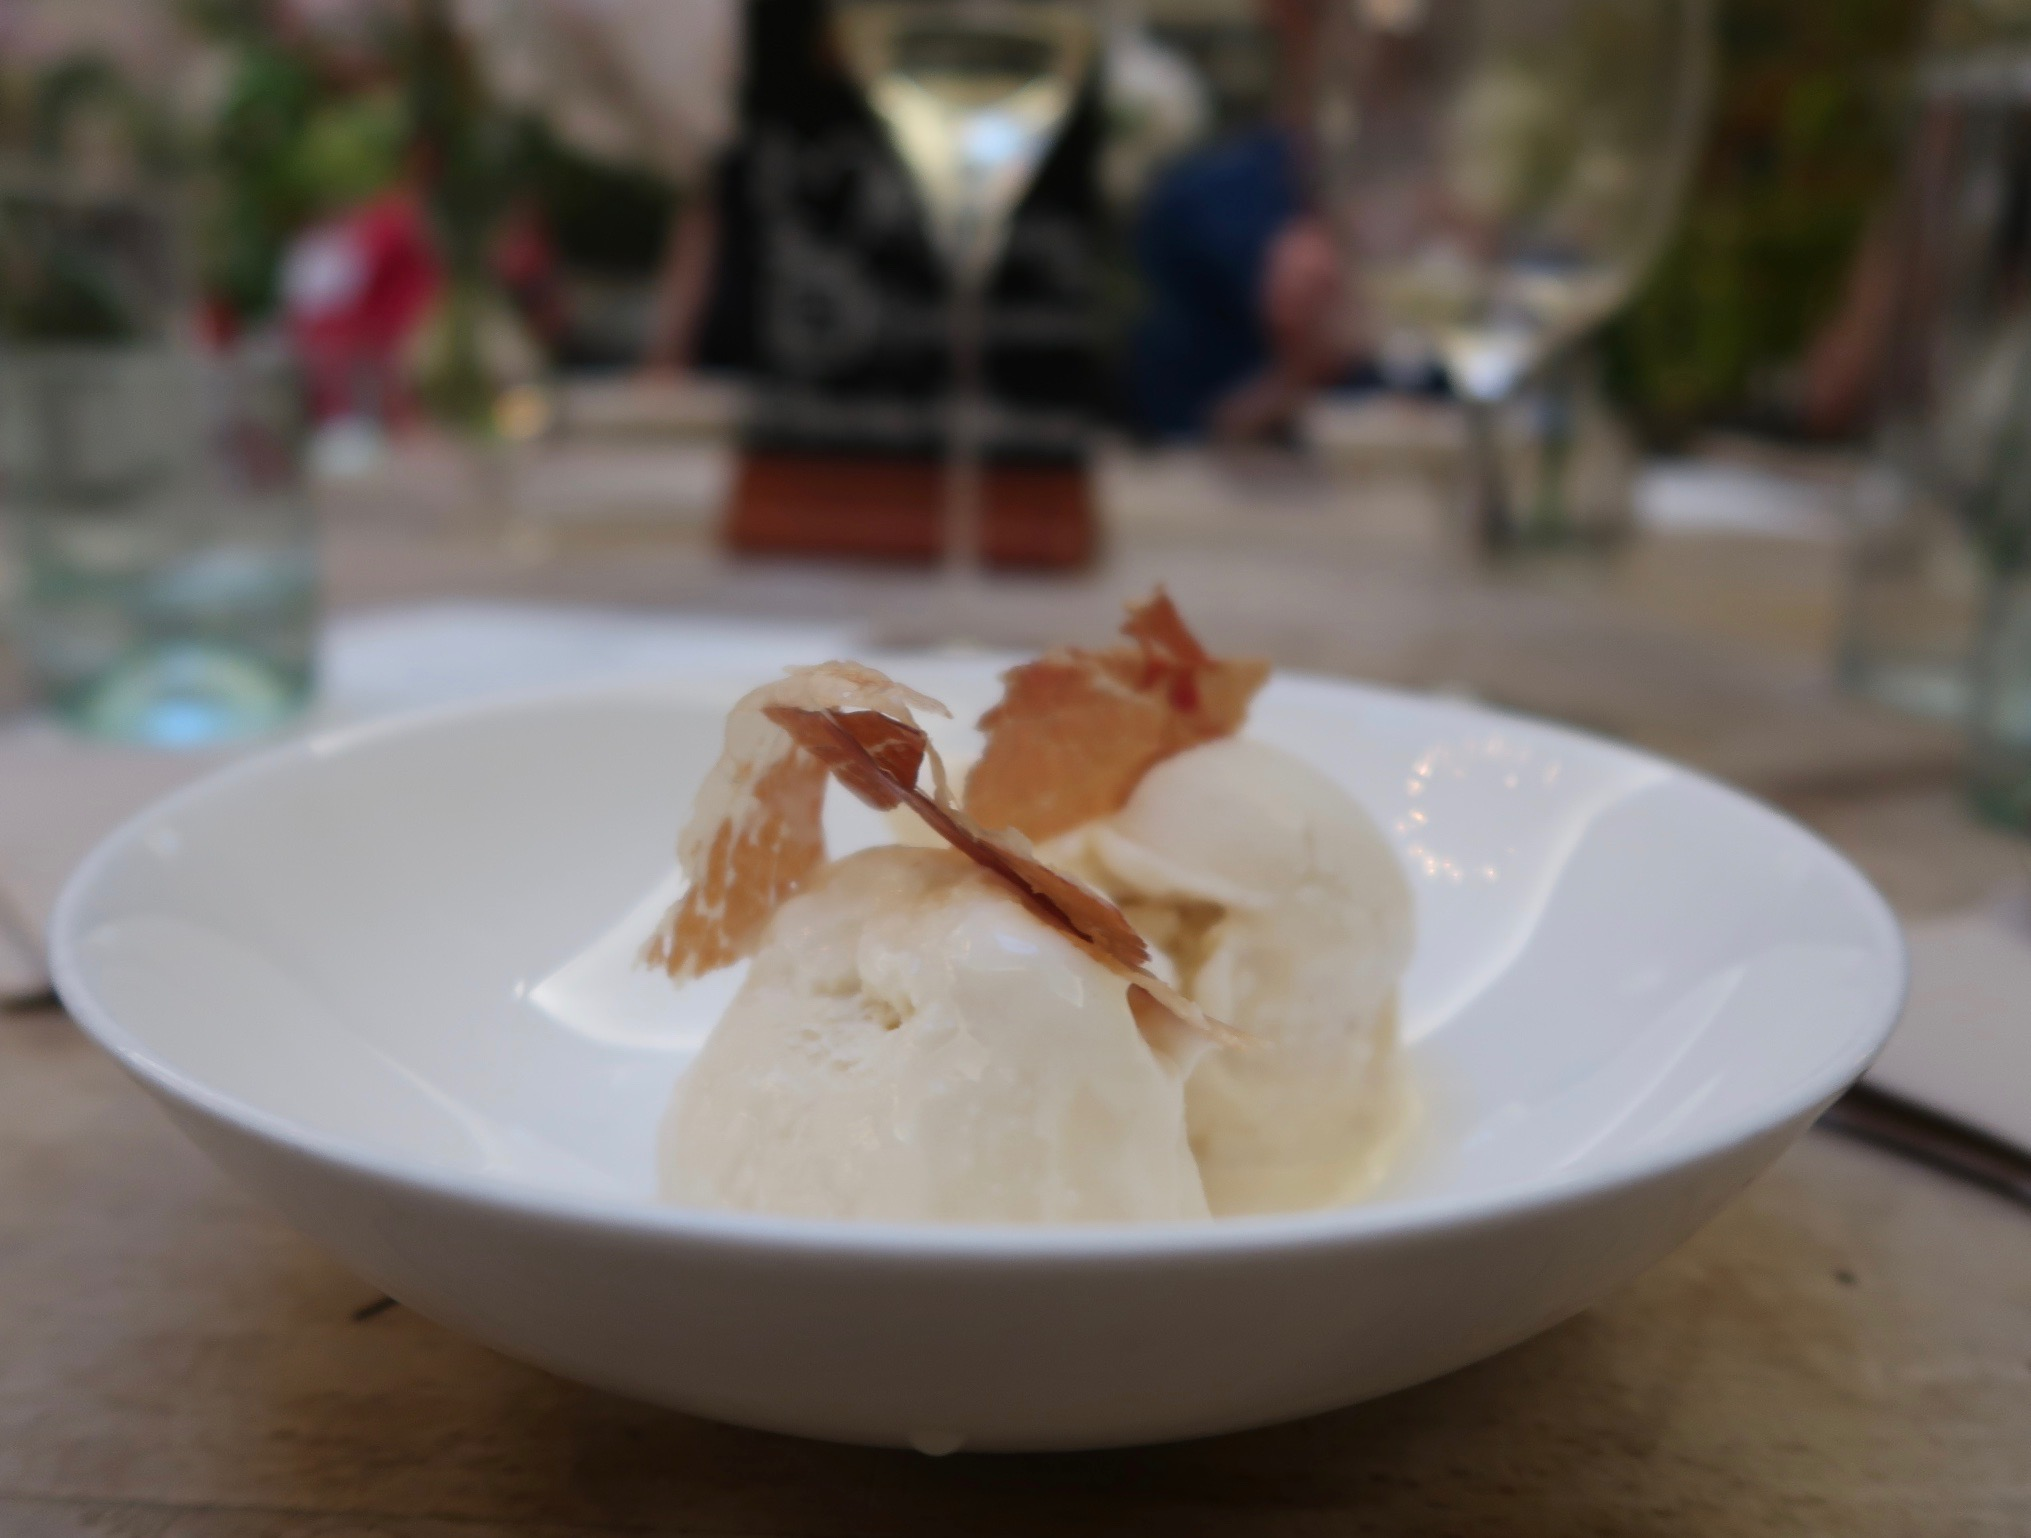 dessert of Prosciutto di Parma and maple ripple ice cream at Petersham Nurseries, Covent Garden